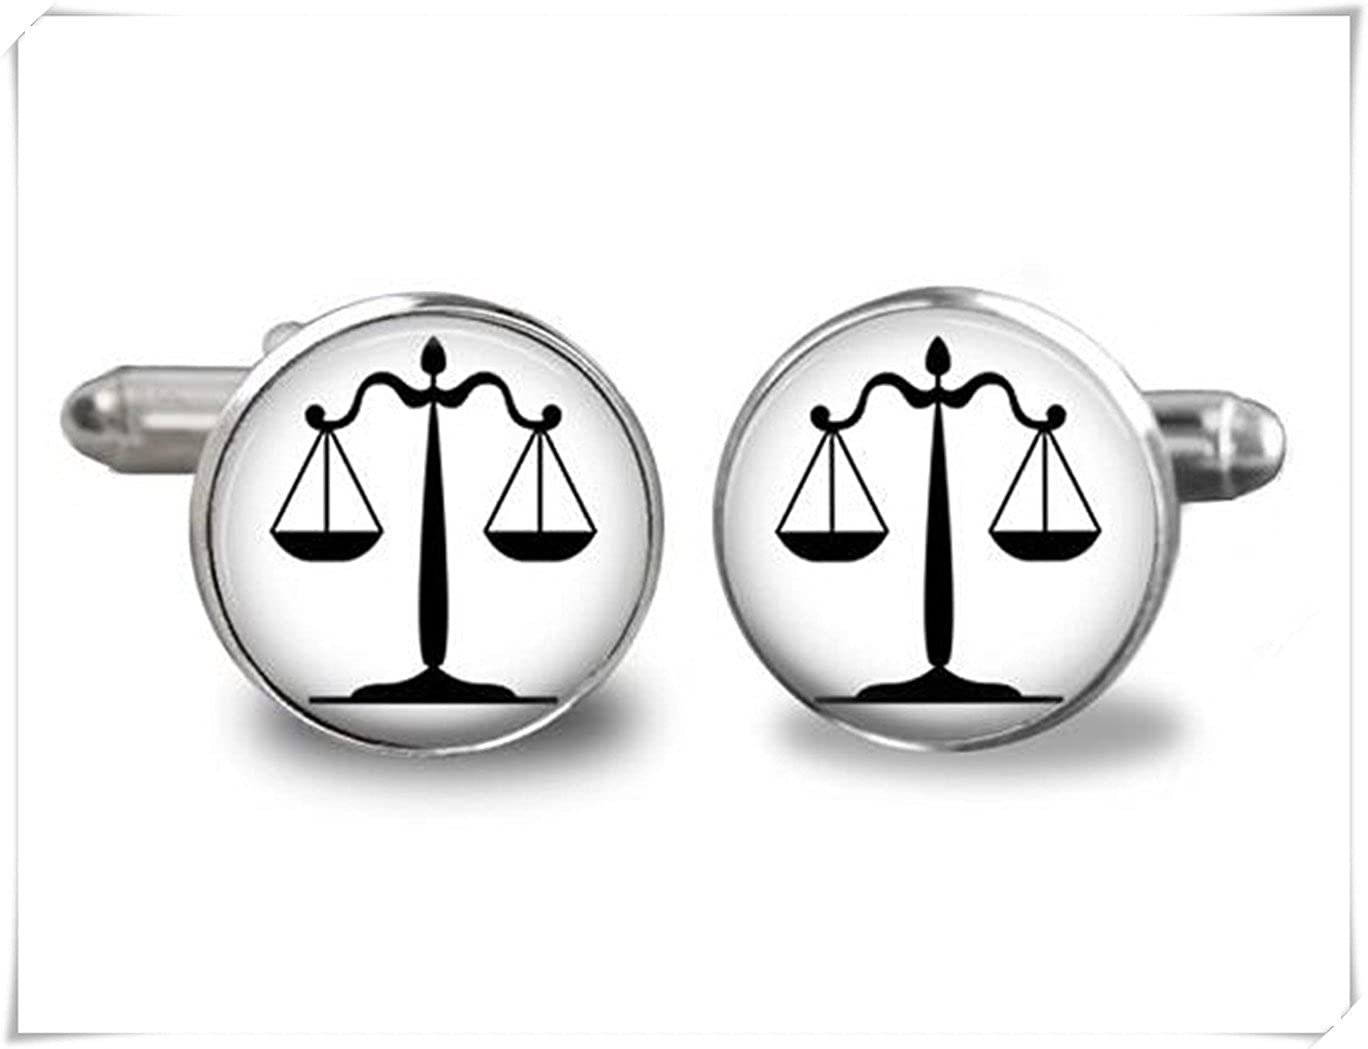 Personalized Justice Symbols Mens Cufflinks CX28